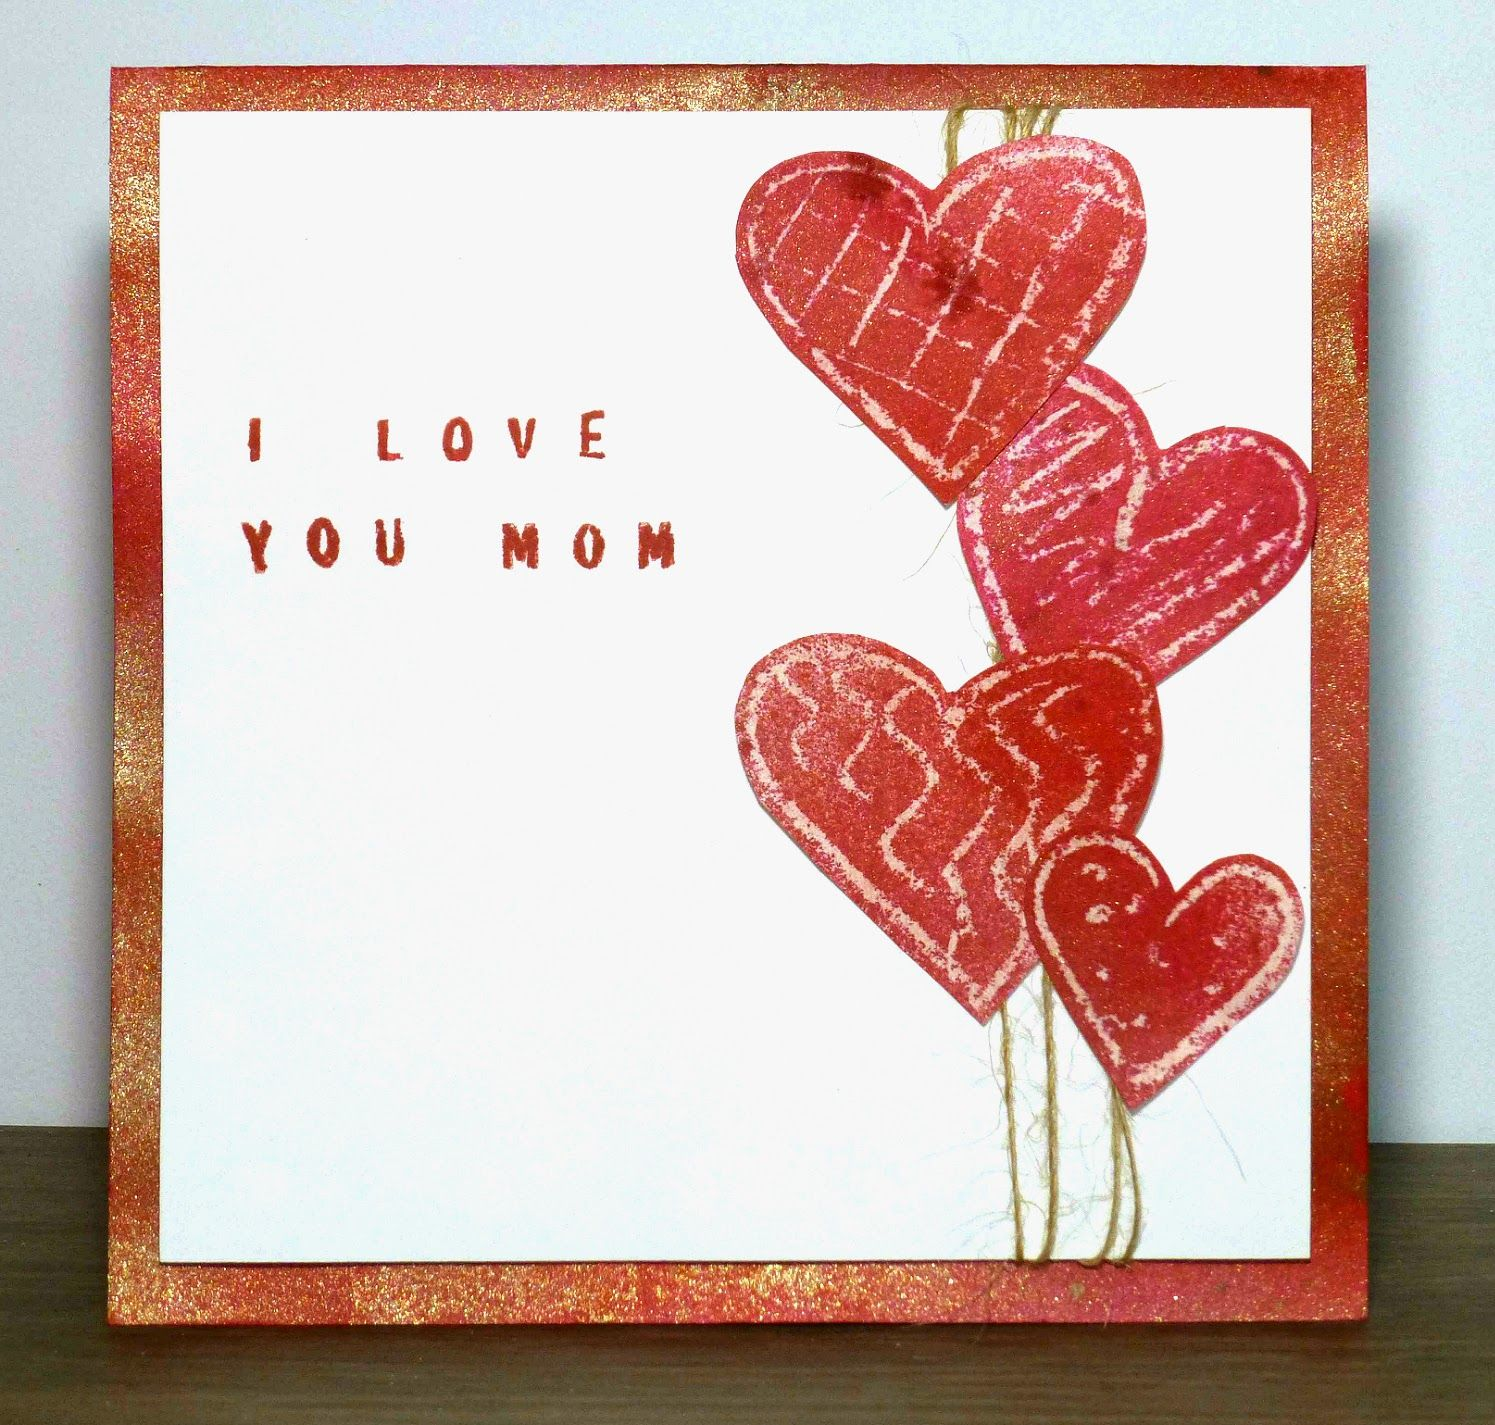 Bonjour scrap kids craft for mothers day with step by step i kids craft for mothers day with step by step i love you mom card paint crayon and paper so easy kids can do it canvascorp tatteredangels creative diy kristyandbryce Gallery